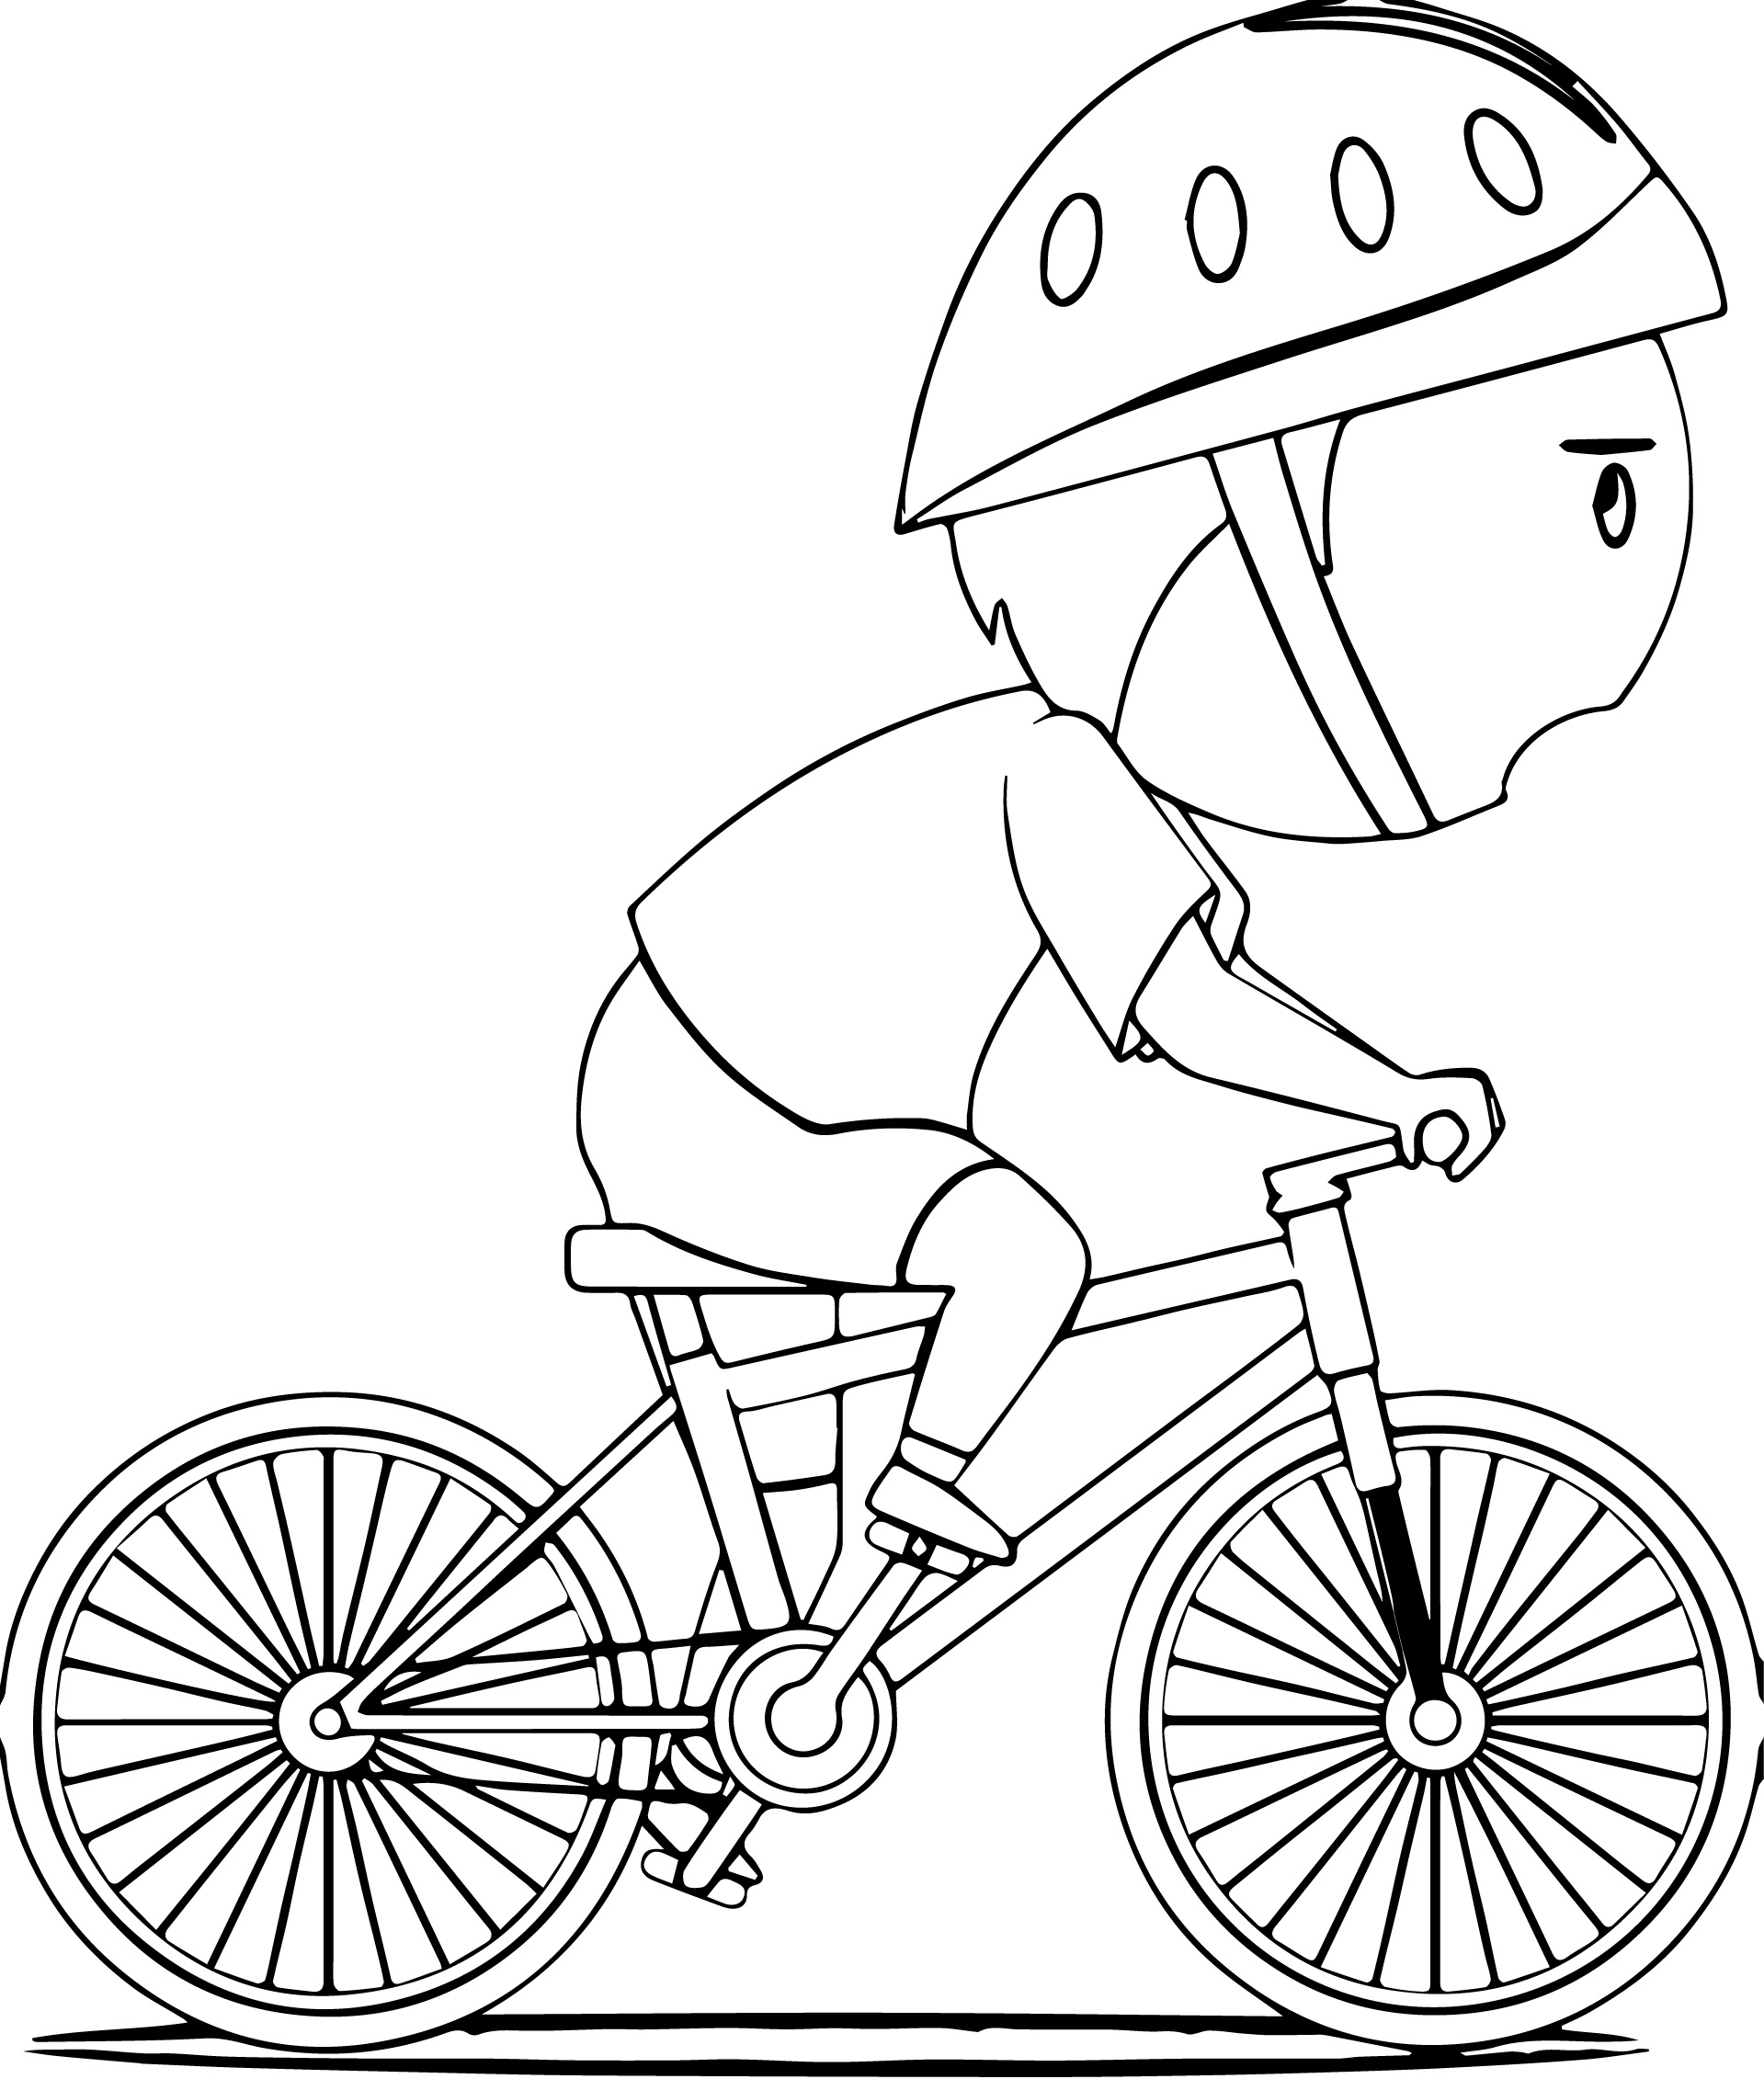 bmx printable coloring pages bmx coloring pages coloring pages to download and print pages printable coloring bmx